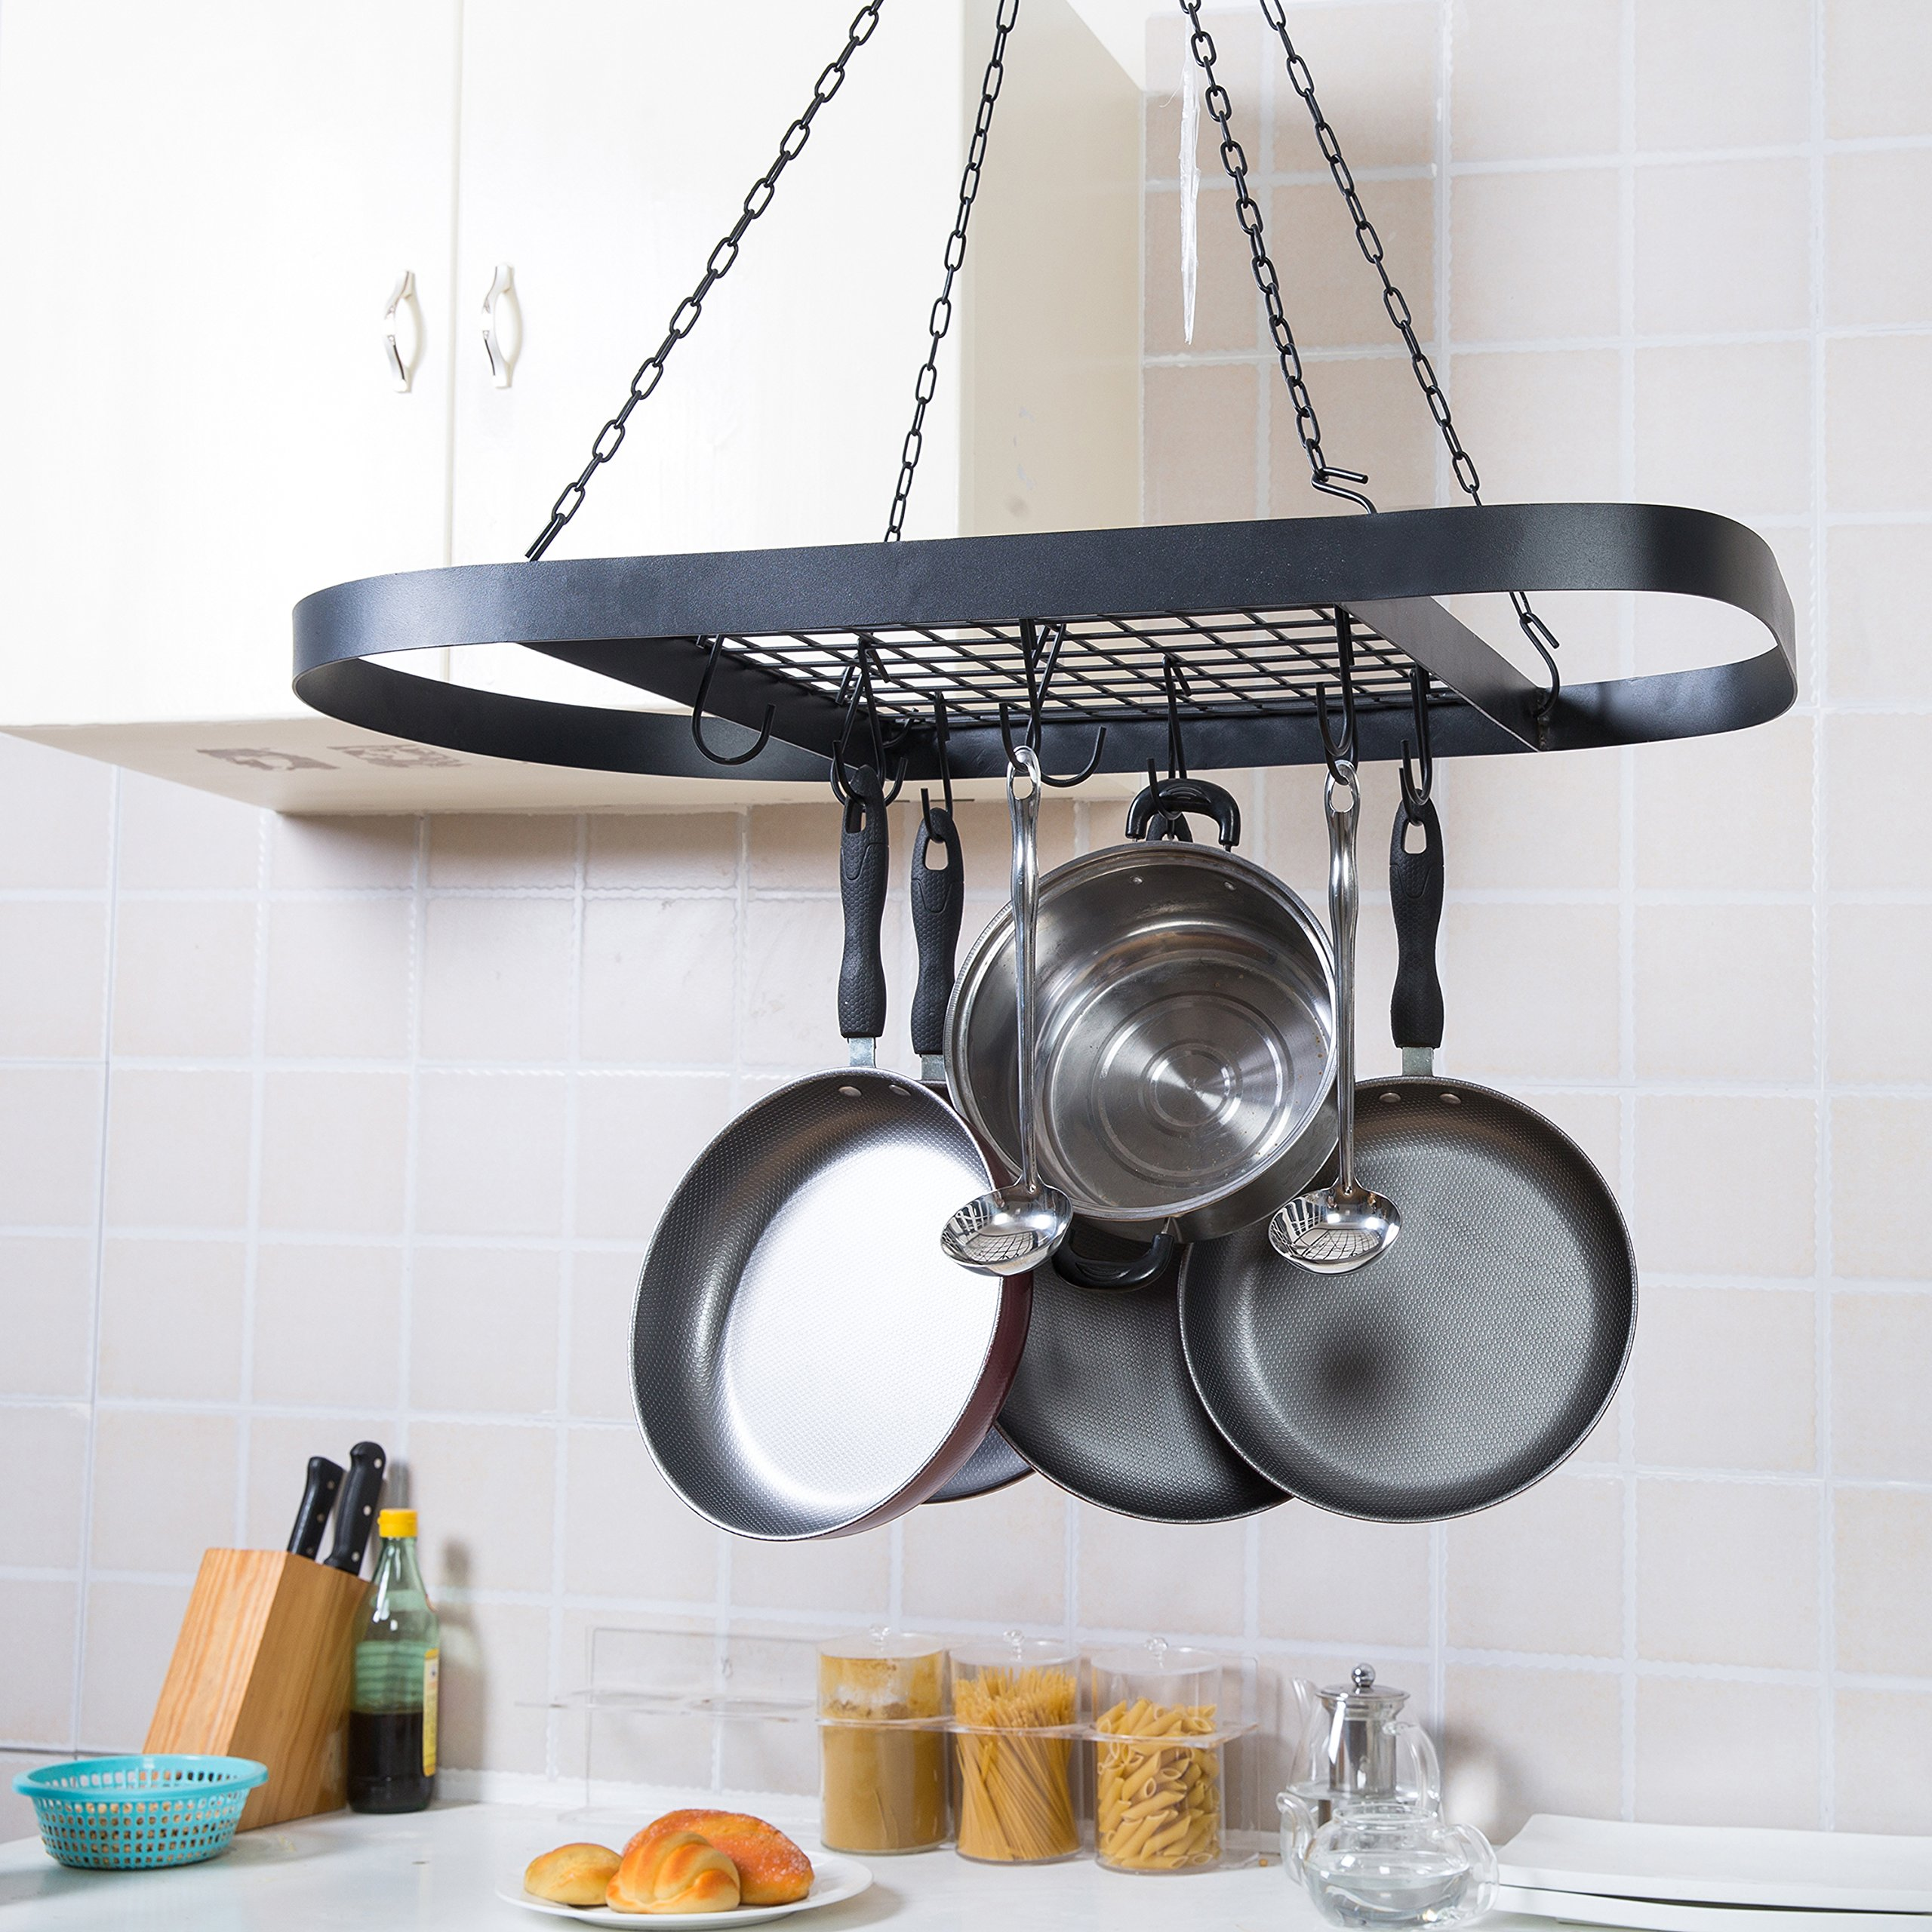 Black Metal Ceiling Mounted Oval Pot Rack, Hanging Cookware Organizer with Wire Grate Shelf by MyGift